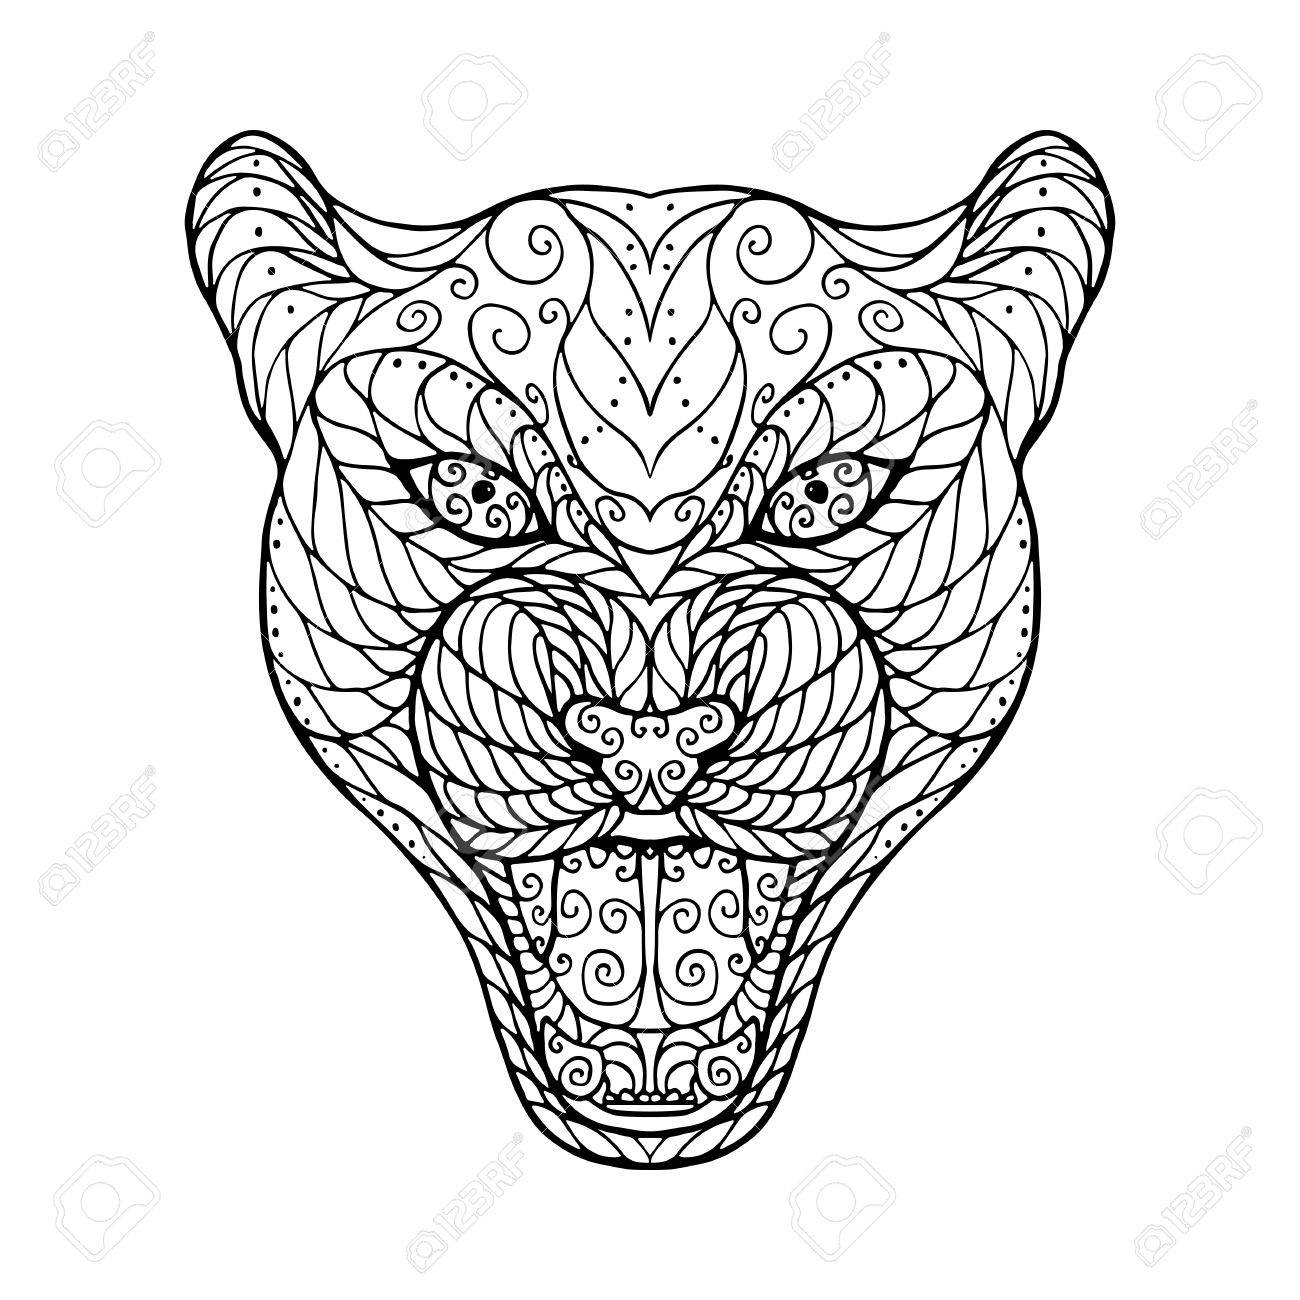 the best free tangle drawing images download from 124